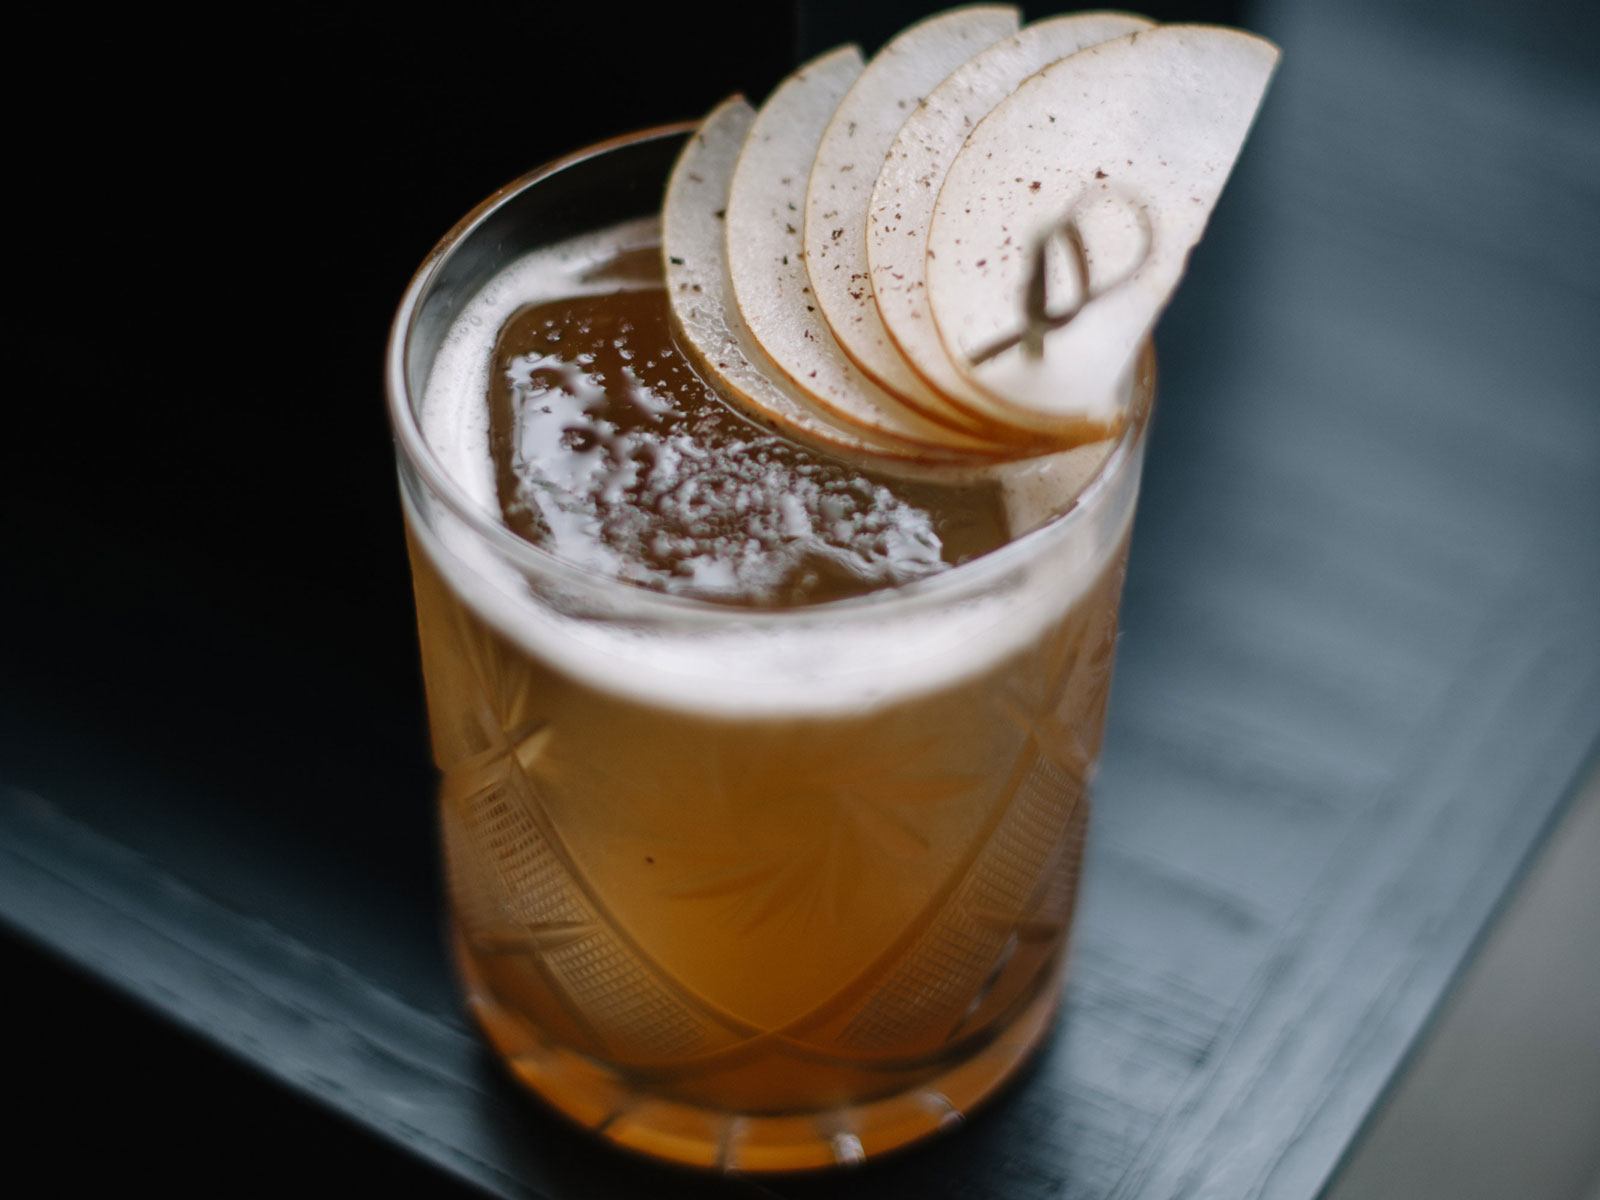 Pear, Spice, and Bourbon Are the Ultimate In Holiday Cheer